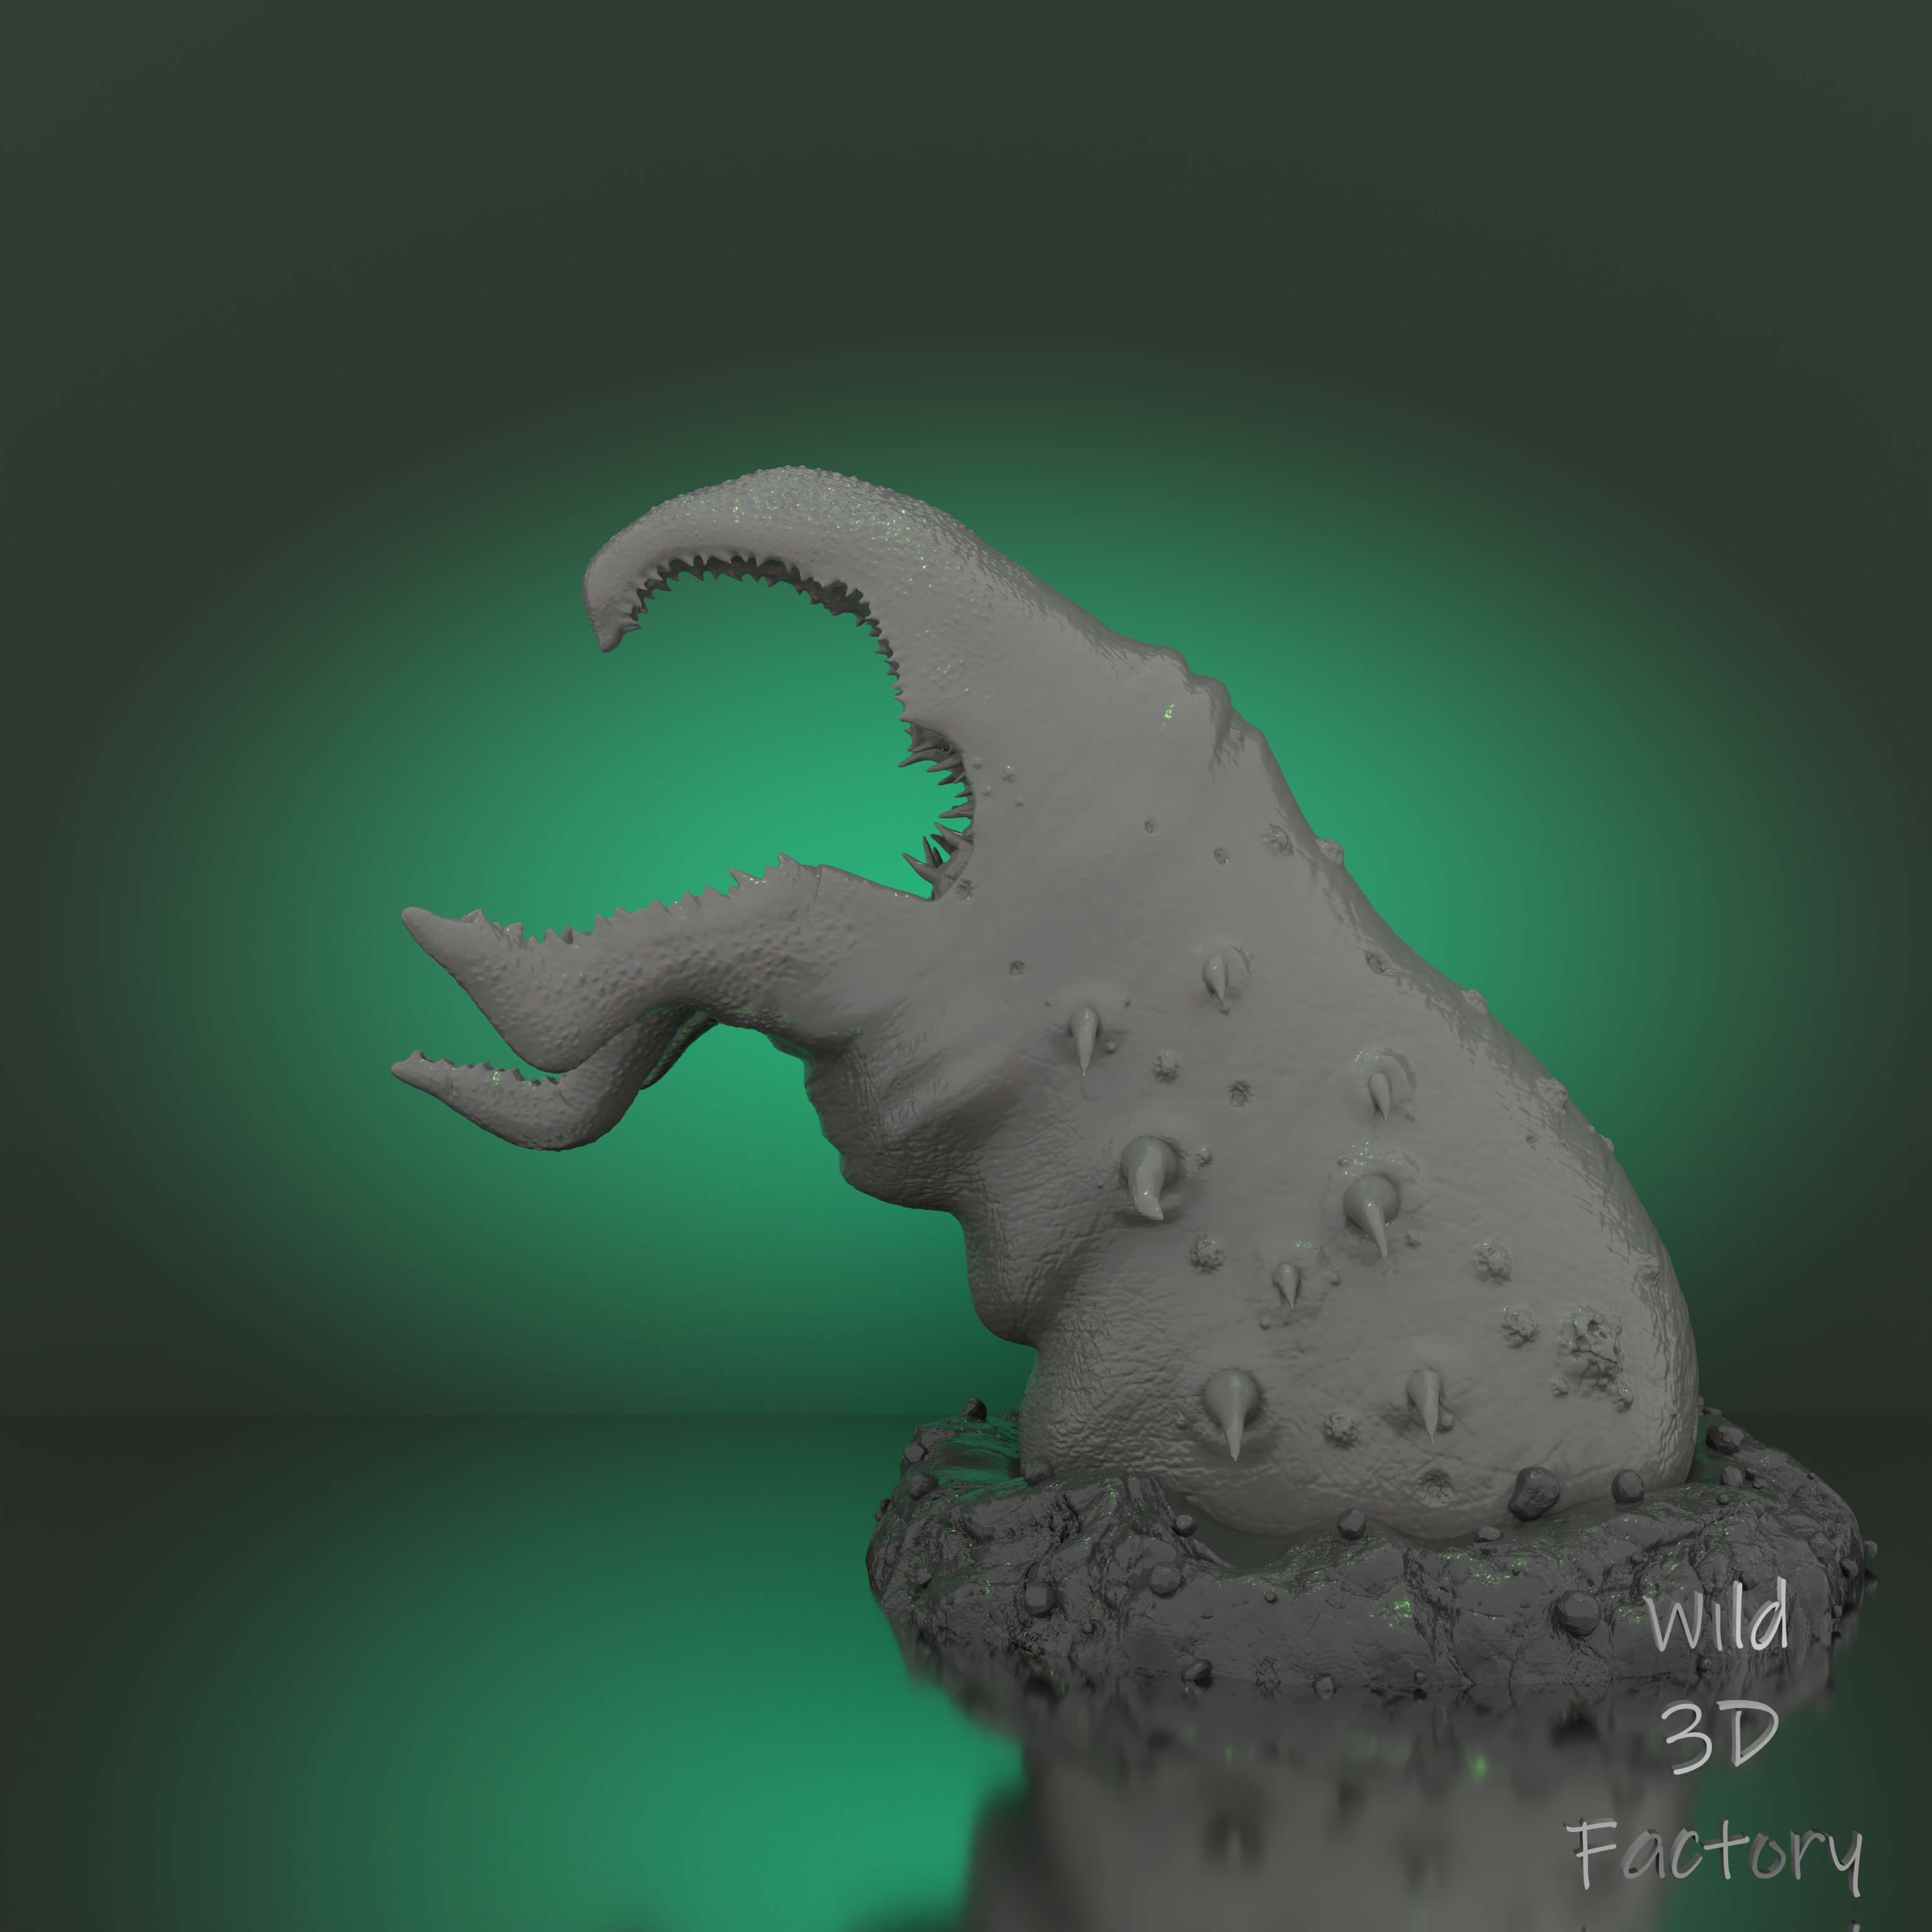 Graboid from Tremors Statue - FanMade Model for 3D printing - I'm very excited to announce the brand new STL FanMade Model ! This Model presents a classic from the 90's - Graboid from Tremors !  The figure is cut/printed/painted ready to go 15cm (see gallery)  2 versions of the head to choose from (with and without snakes heads)  2 stands to choose from  Come back to your youth with this classic !     Thanks a lot !:)      All rights reserved   Wild3DFactory - The best files for 3D printing in the world. Stl models divided into parts to facilitate 3D printing. All kinds of characters, decoration, cosplay, prosthetics, pieces. Quality in 3D printing. Affordable 3D models. Low cost. Collective purchases of 3D files.